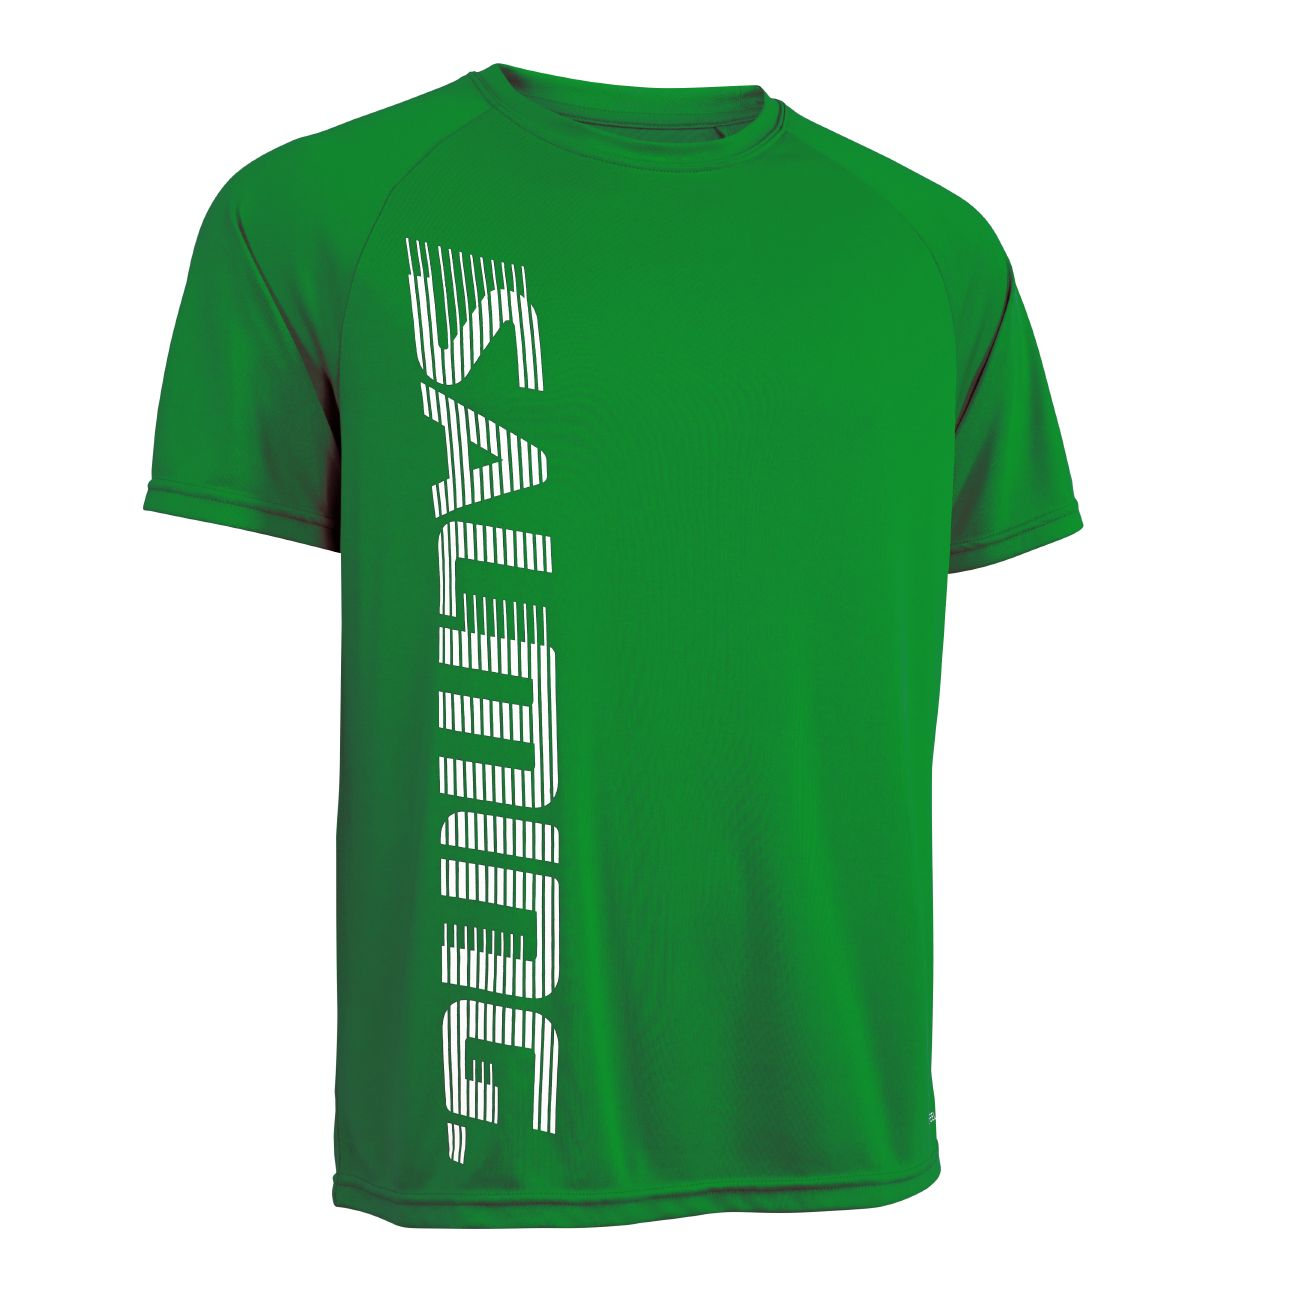 Salming Training Tee 2.0 Zelená, XXXL